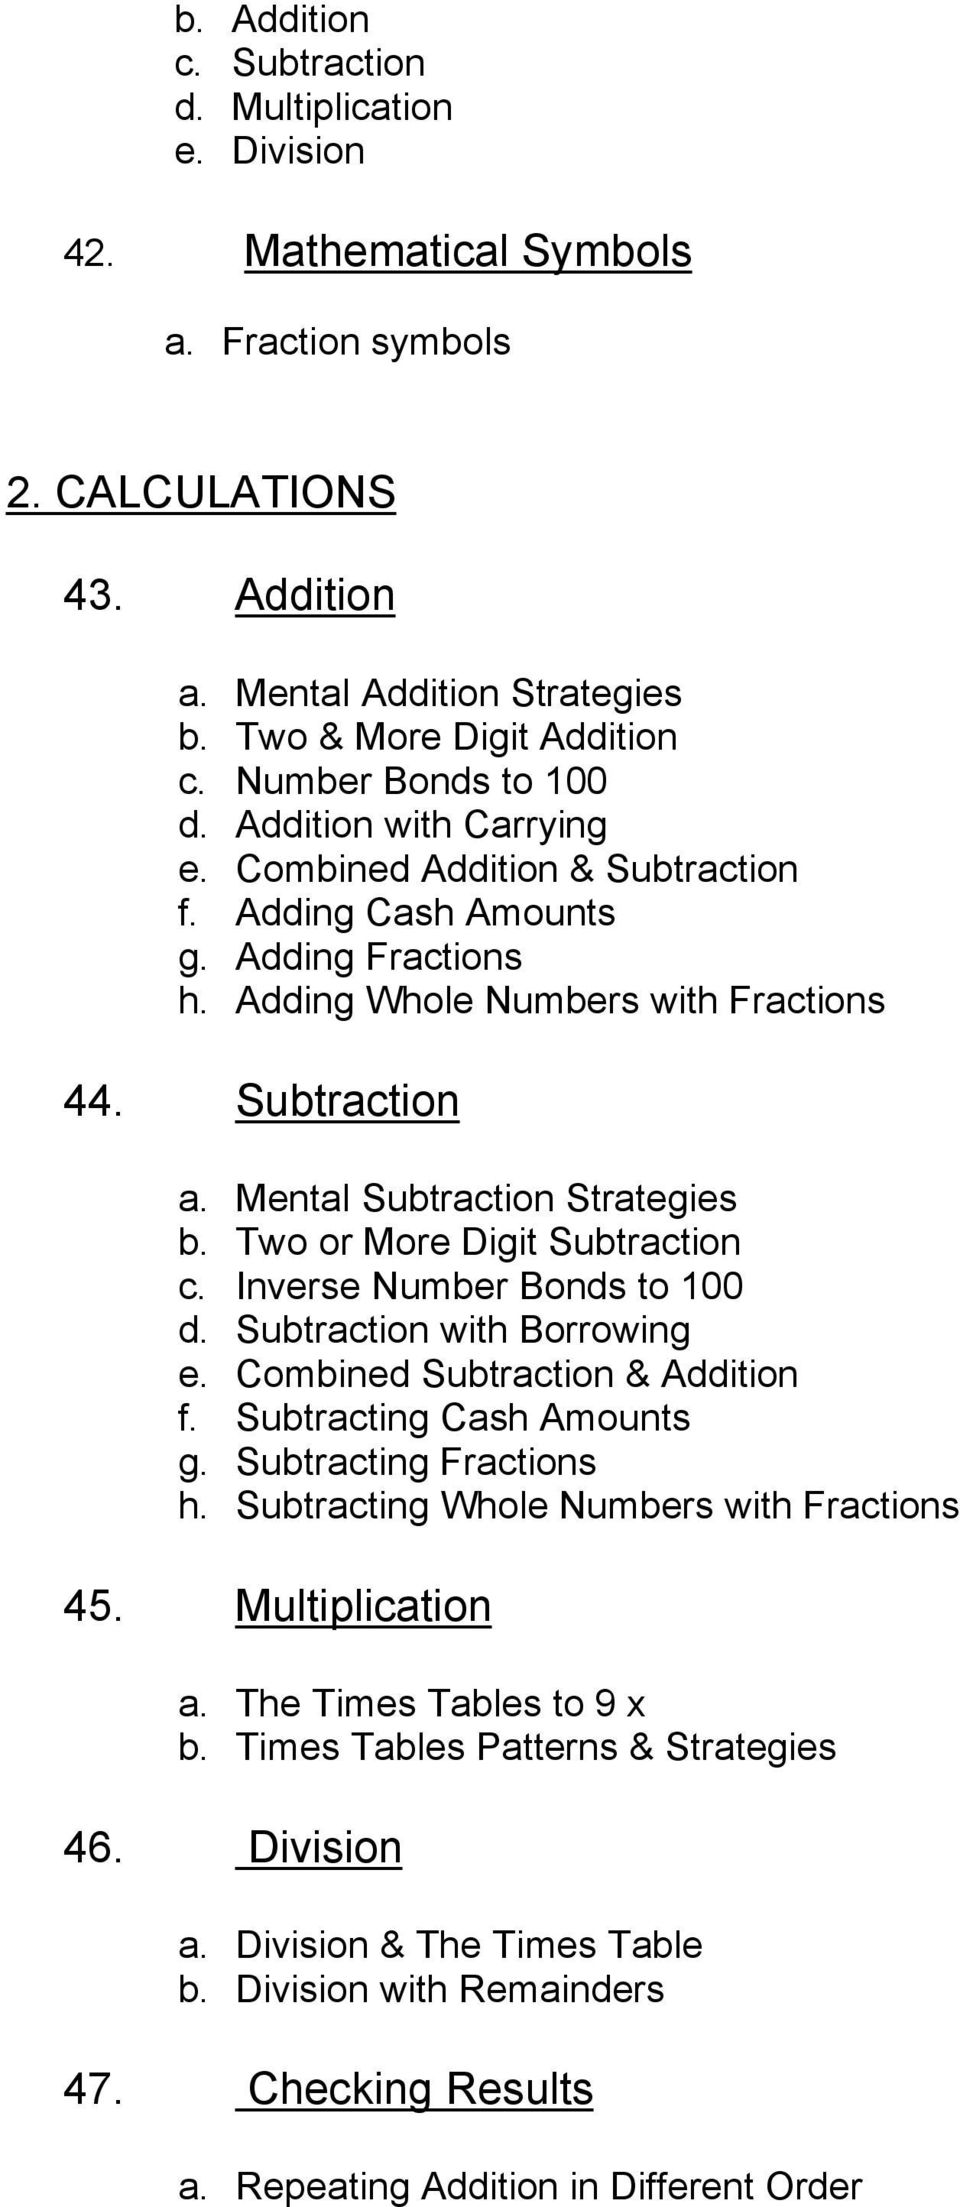 Mental Subtraction Strategies b. Two or More Digit Subtraction c. Inverse Number Bonds to 100 d. Subtraction with Borrowing e. Combined Subtraction & Addition f. Subtracting Cash Amounts g.